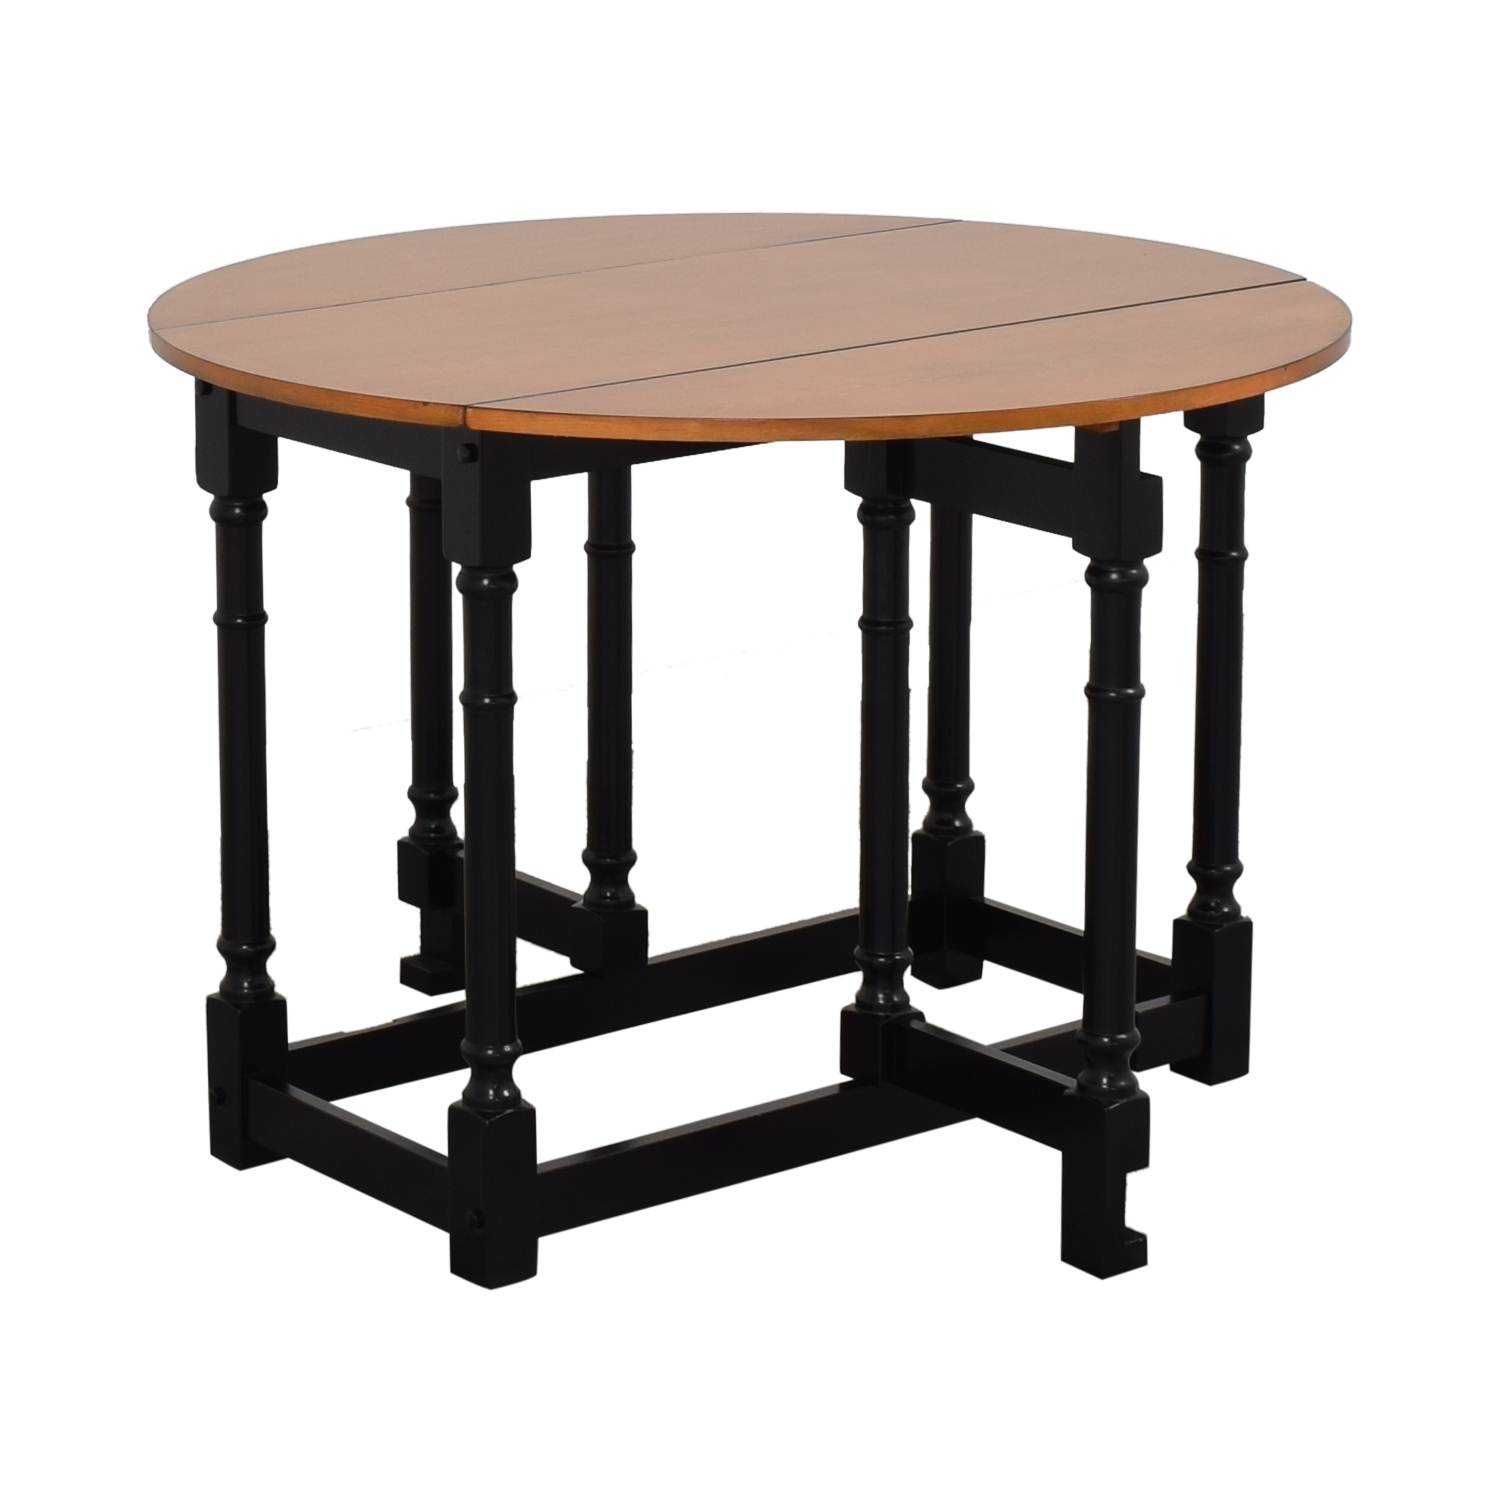 Accent Trend Accent Trend Solid Wood Gateleg Table ct